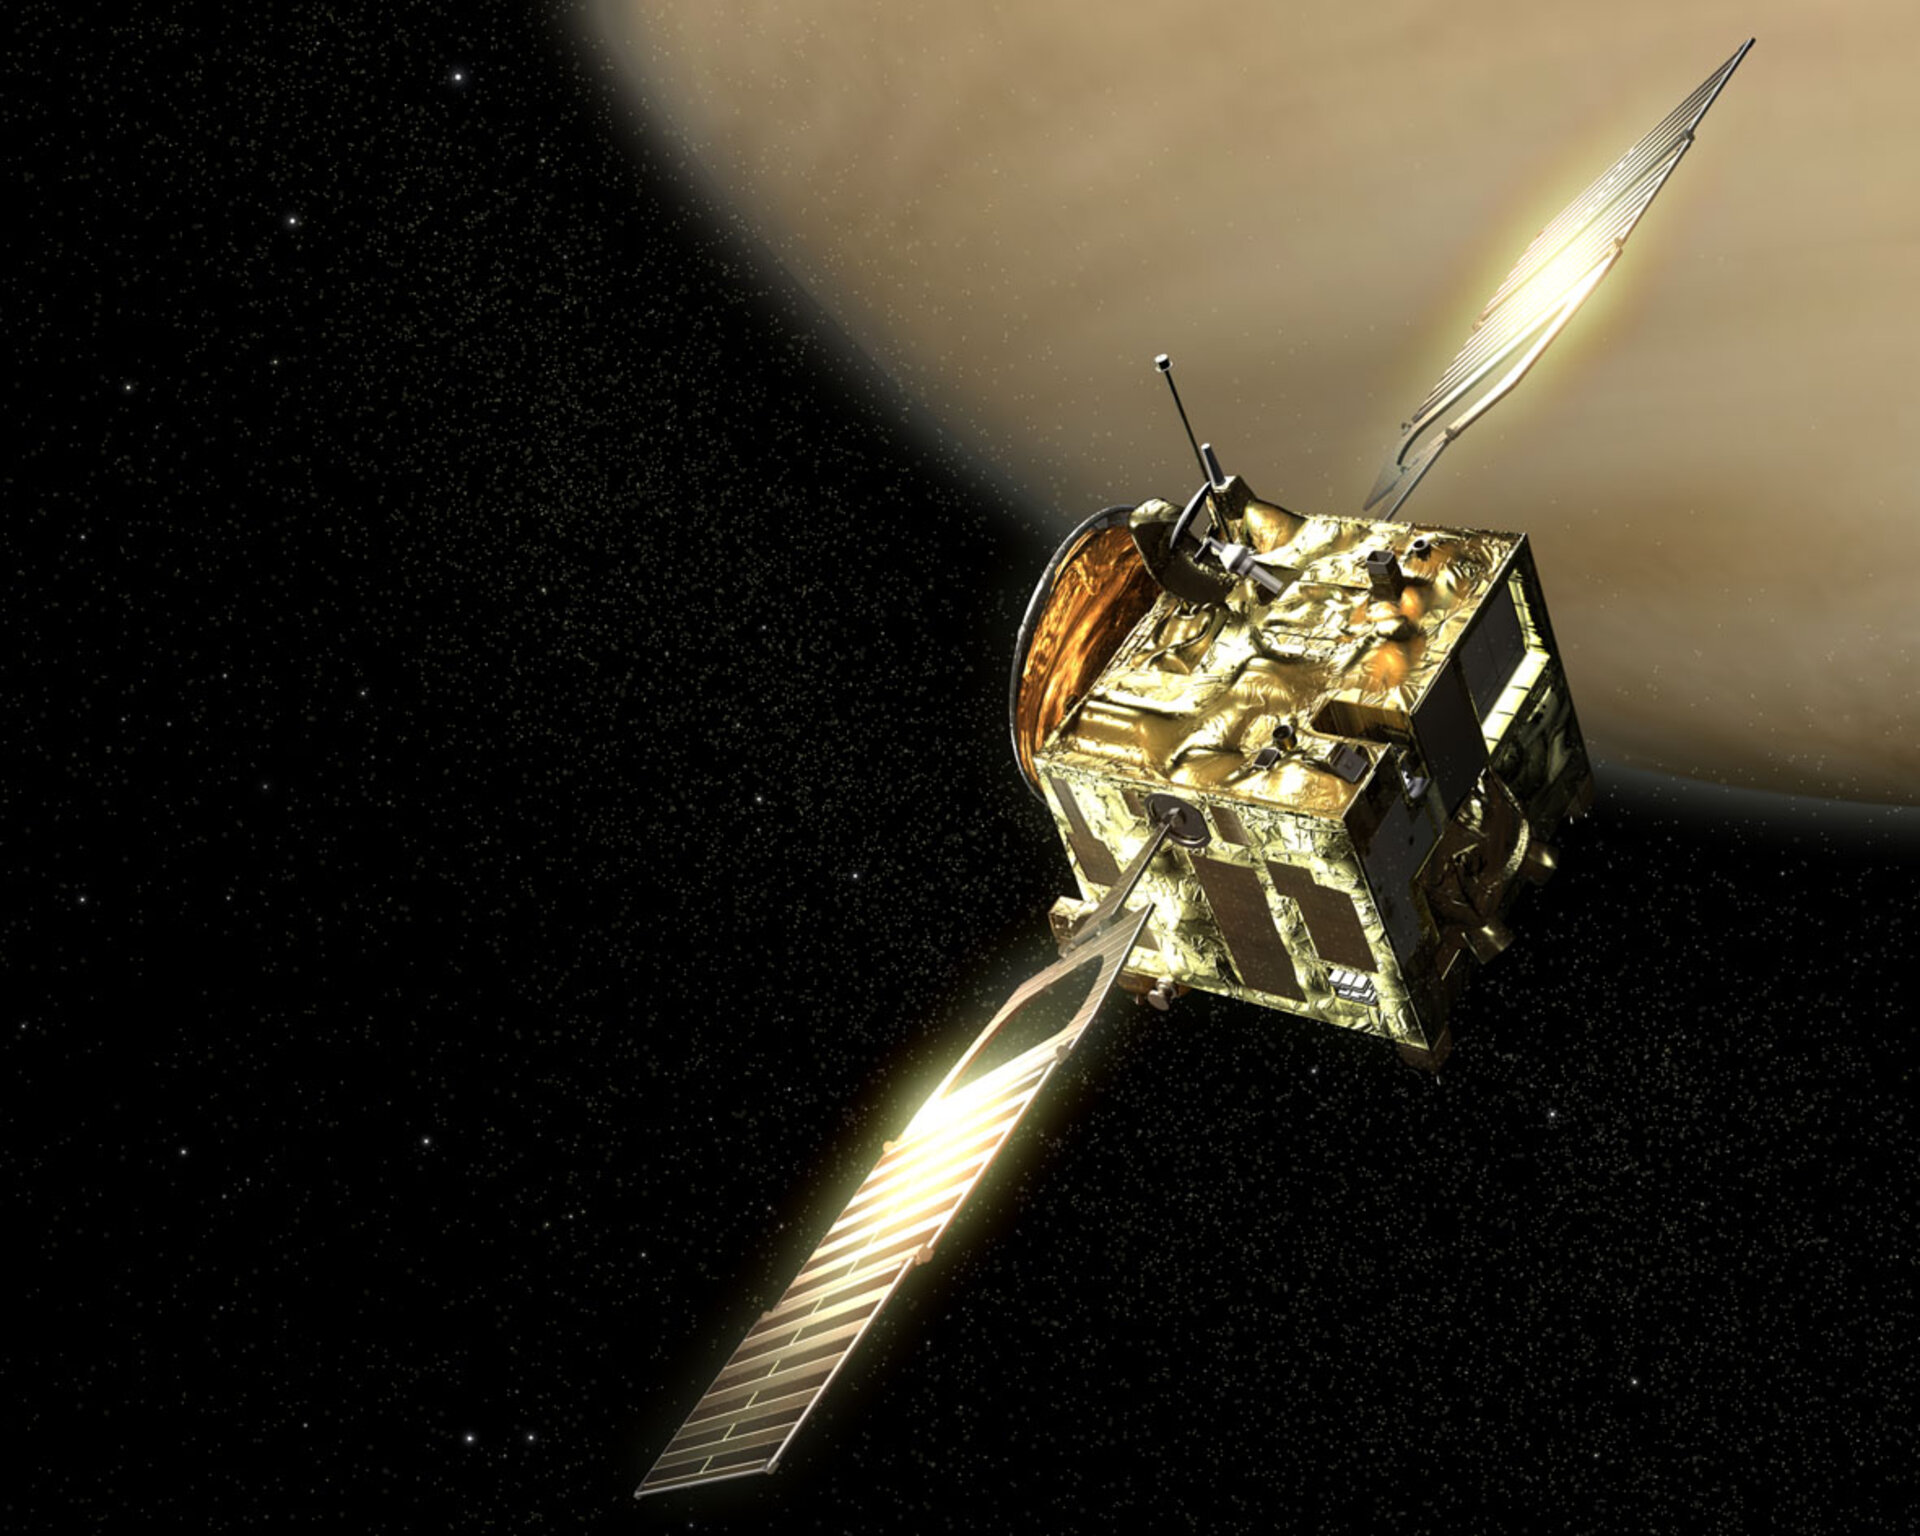 Artist's impression of Venus Express